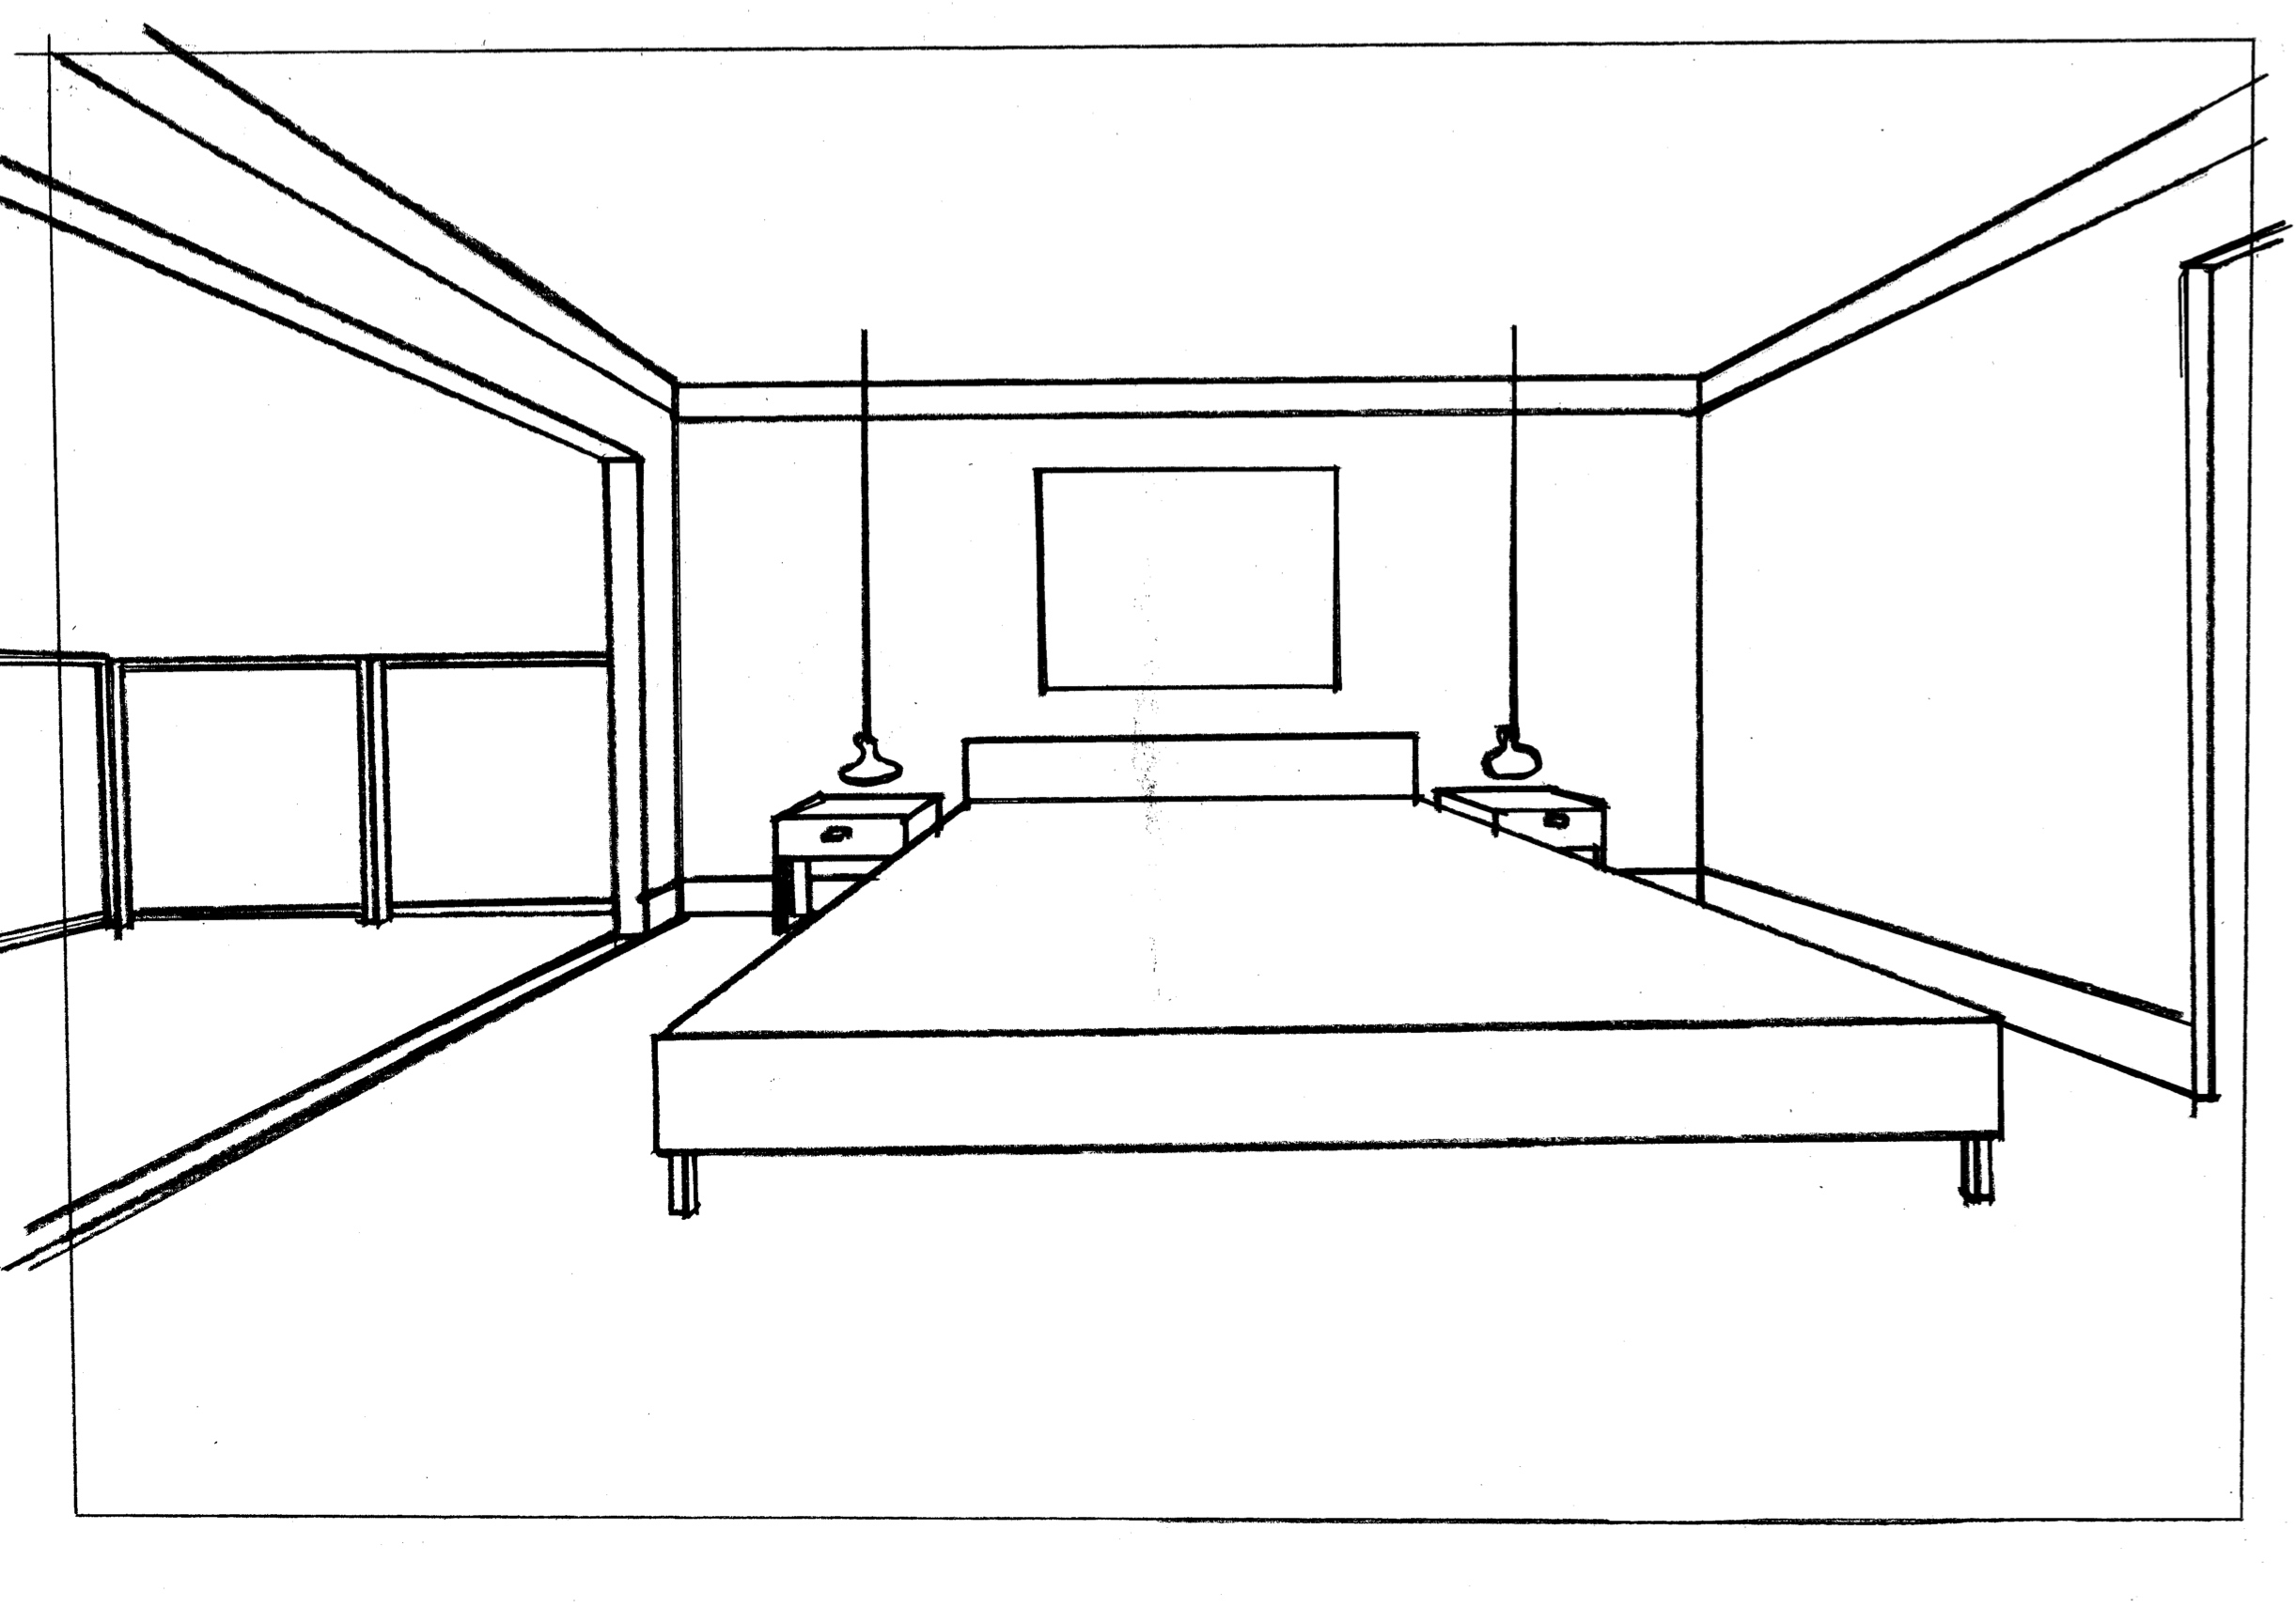 Perspective drawing - Before